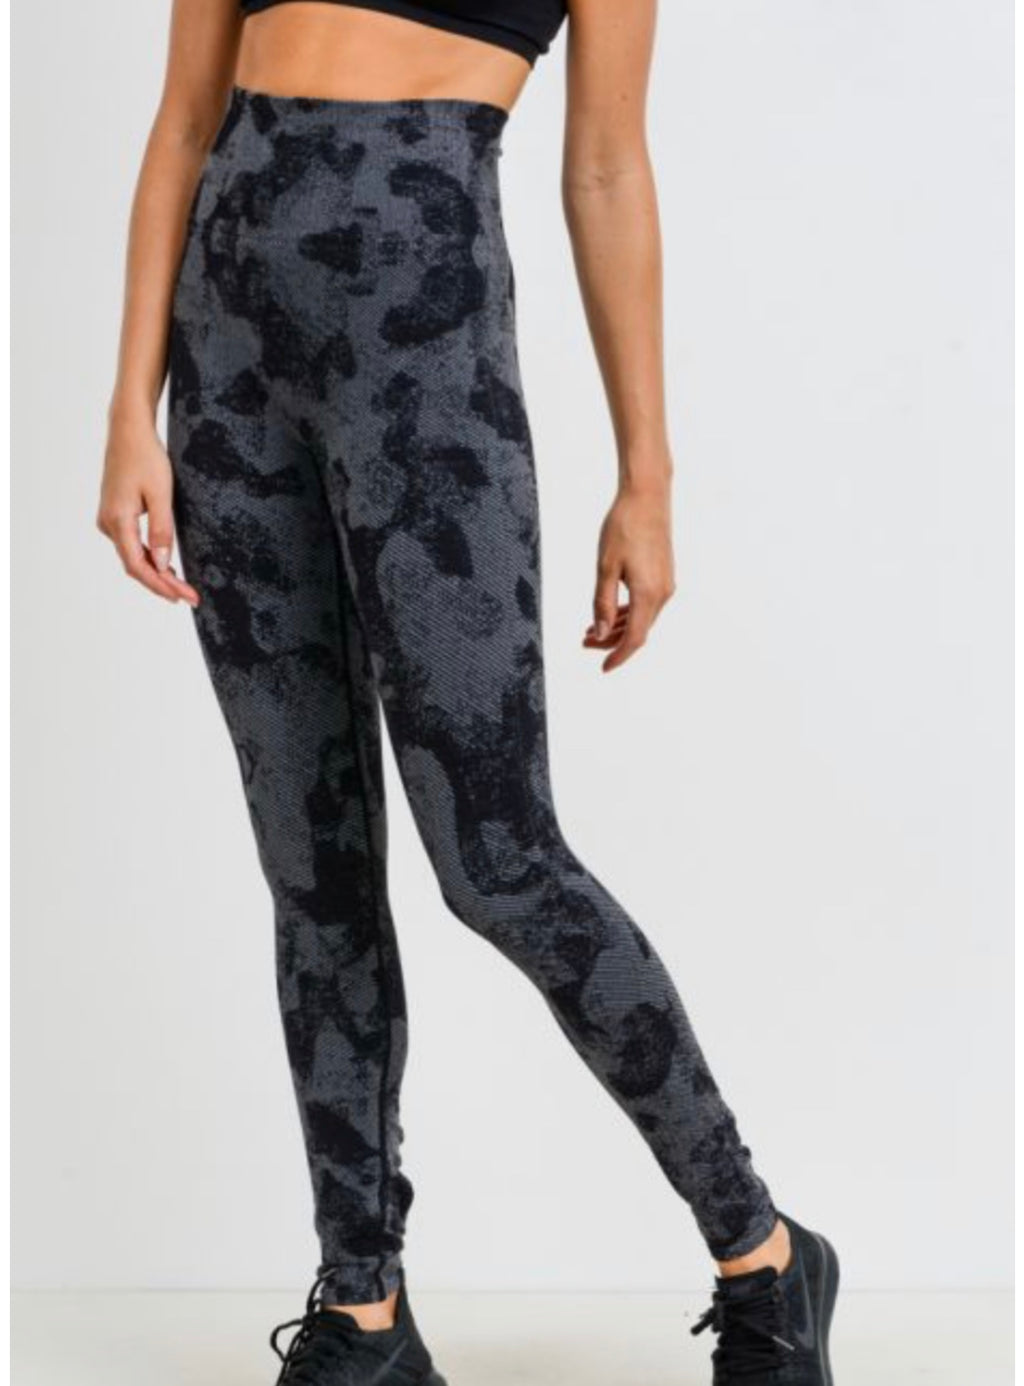 Seamless Black Striped Camo Print Leggings *Clearance*